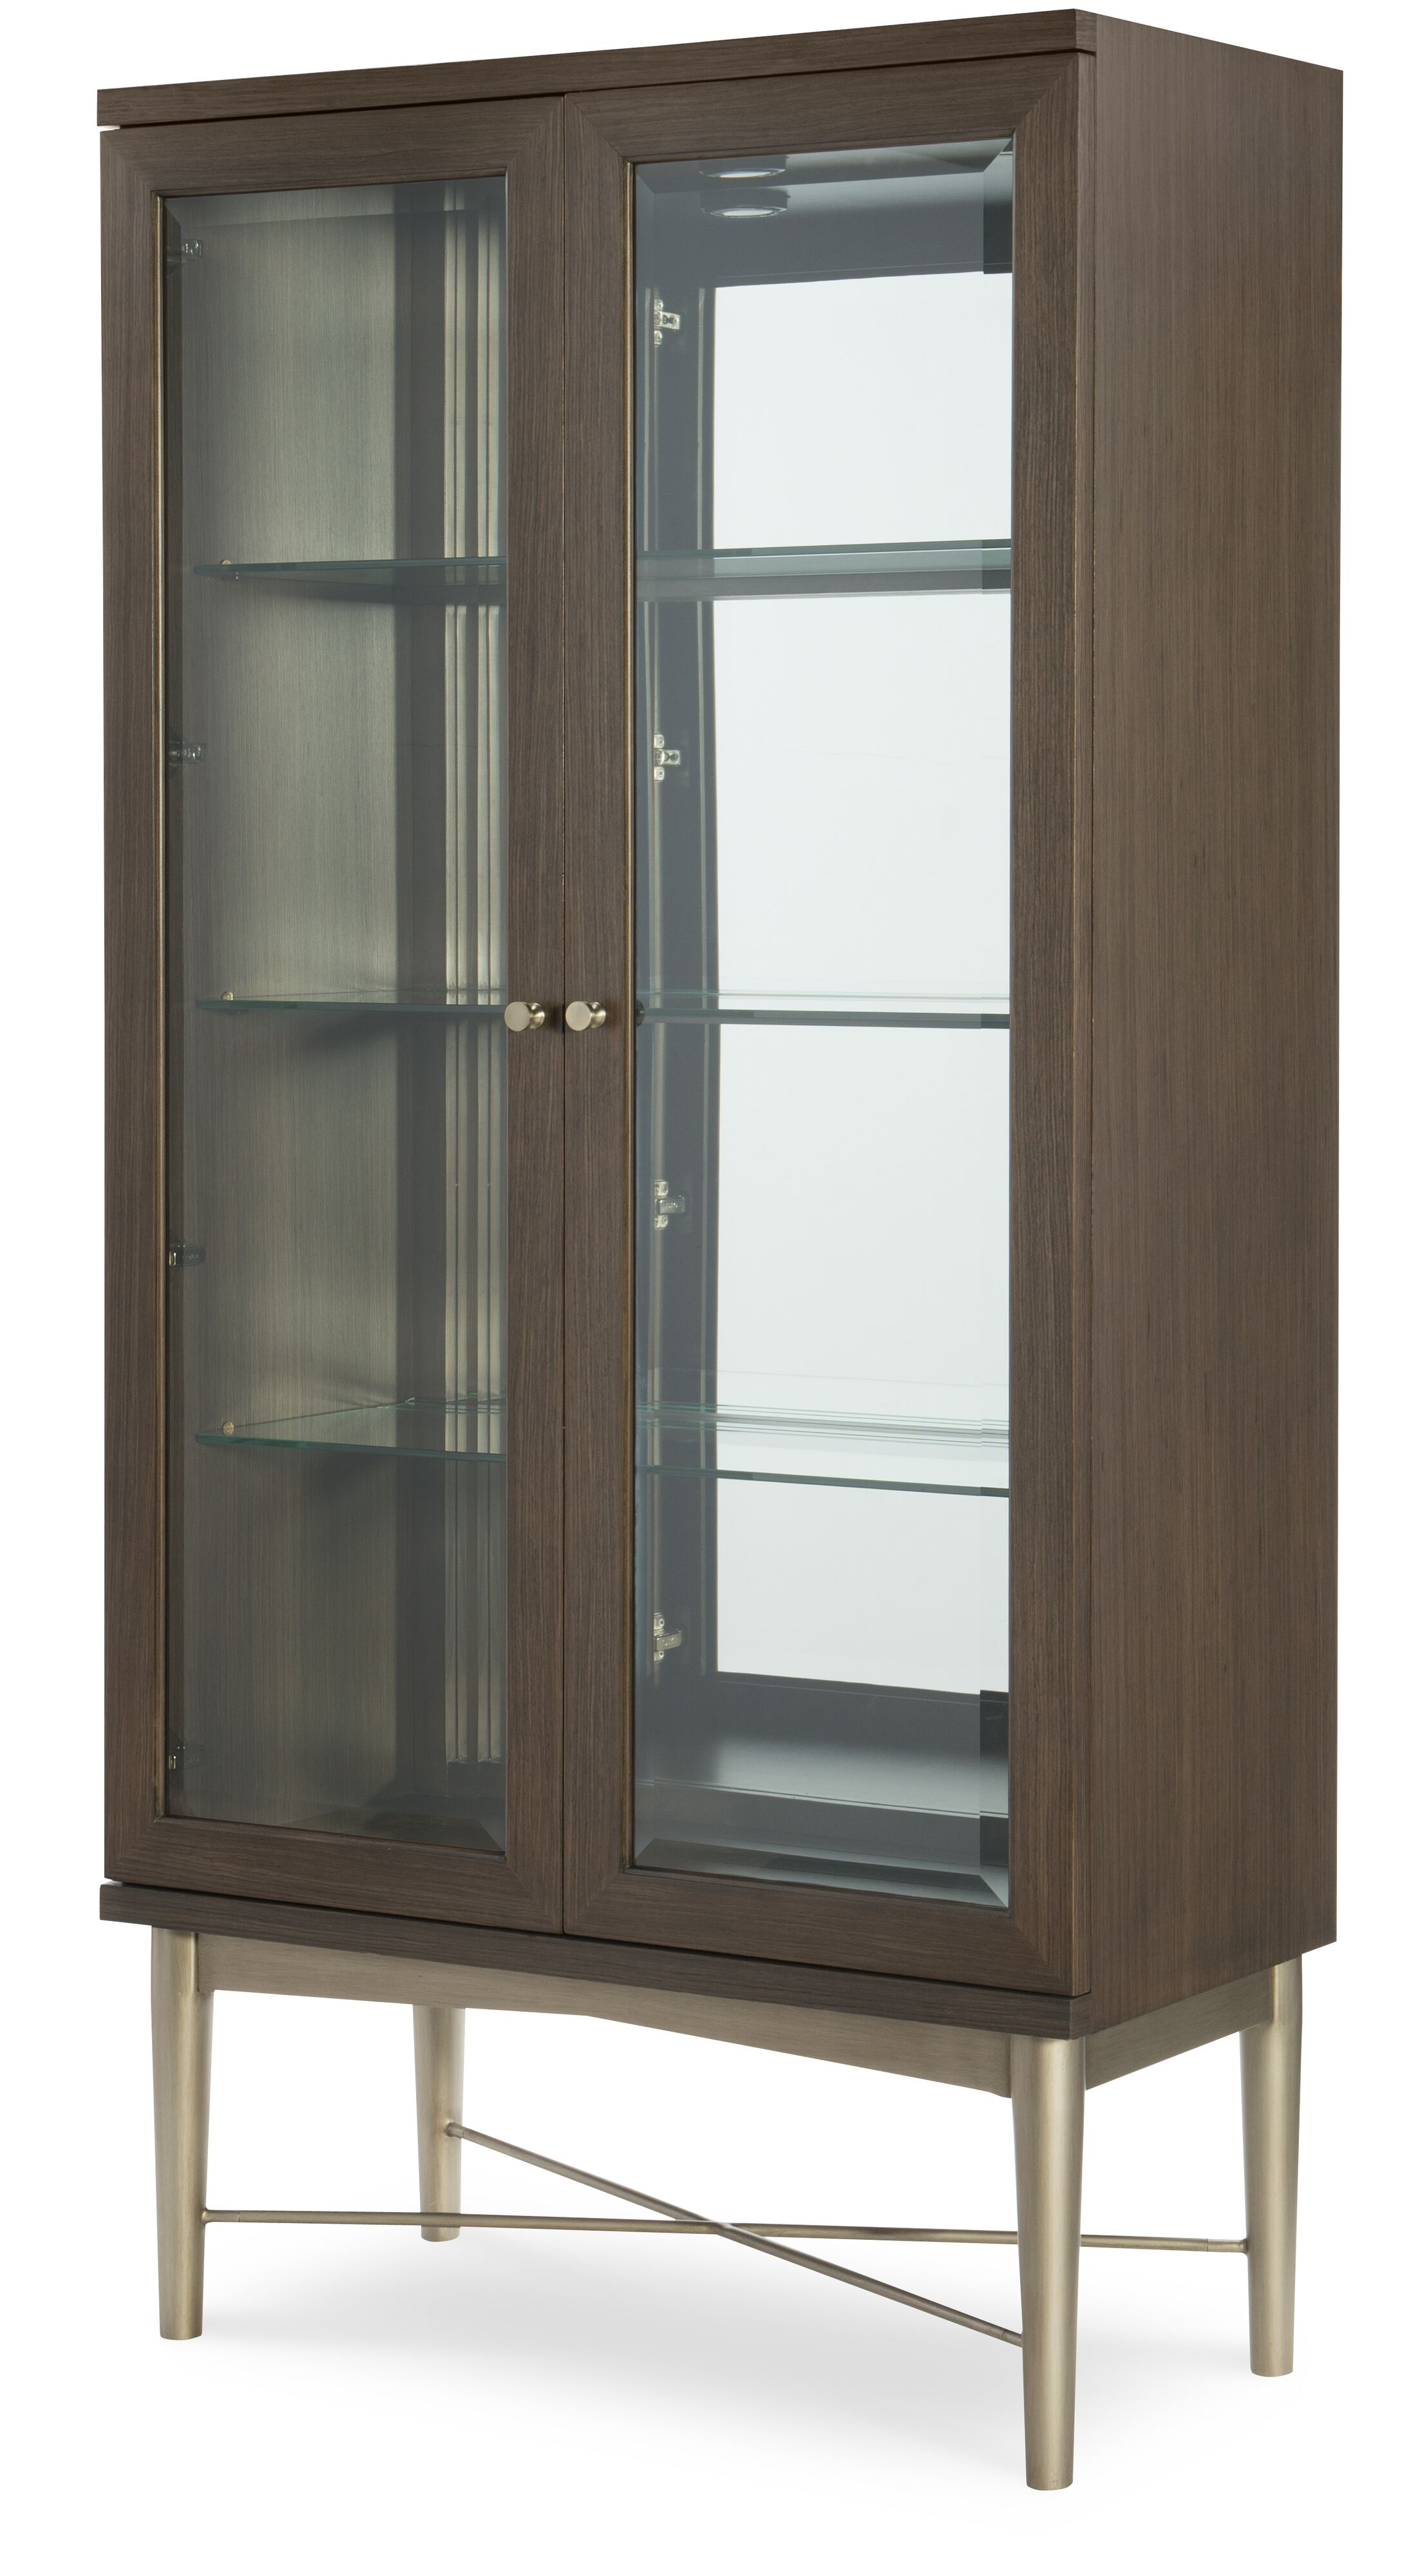 Soho by Rachael Ray Home Lighted Curio Cabinet